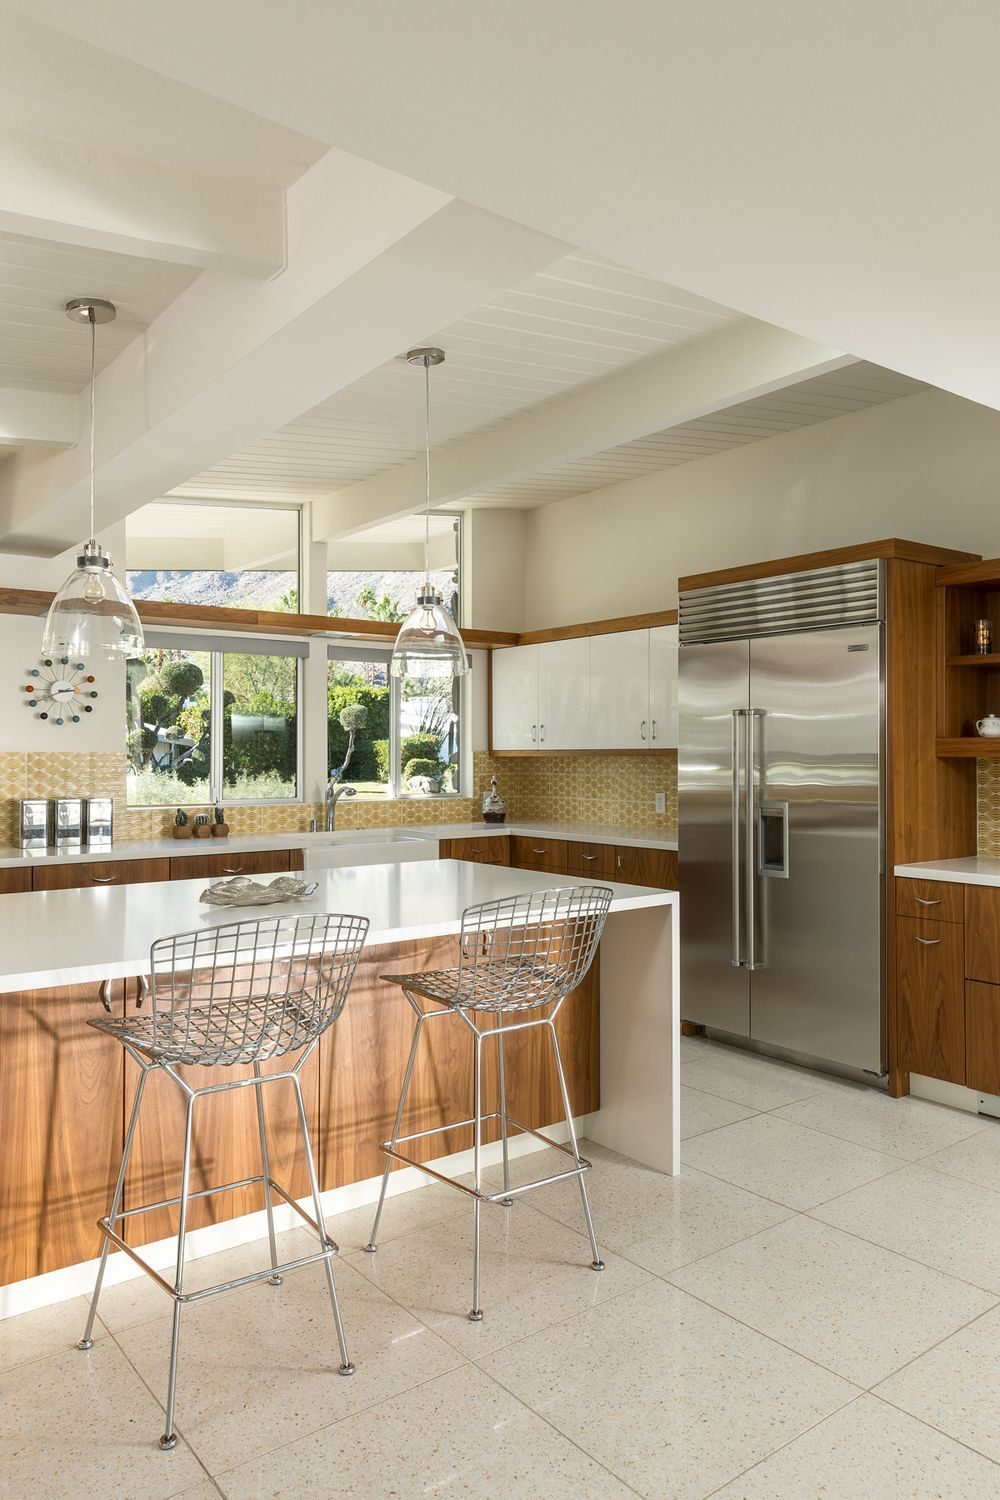 Palm Springs Midcentury With Pool And Panoramic Views Asks 2 6m Mid Century Modern Kitchen Modern Kitchen Flooring Modern Kitchen